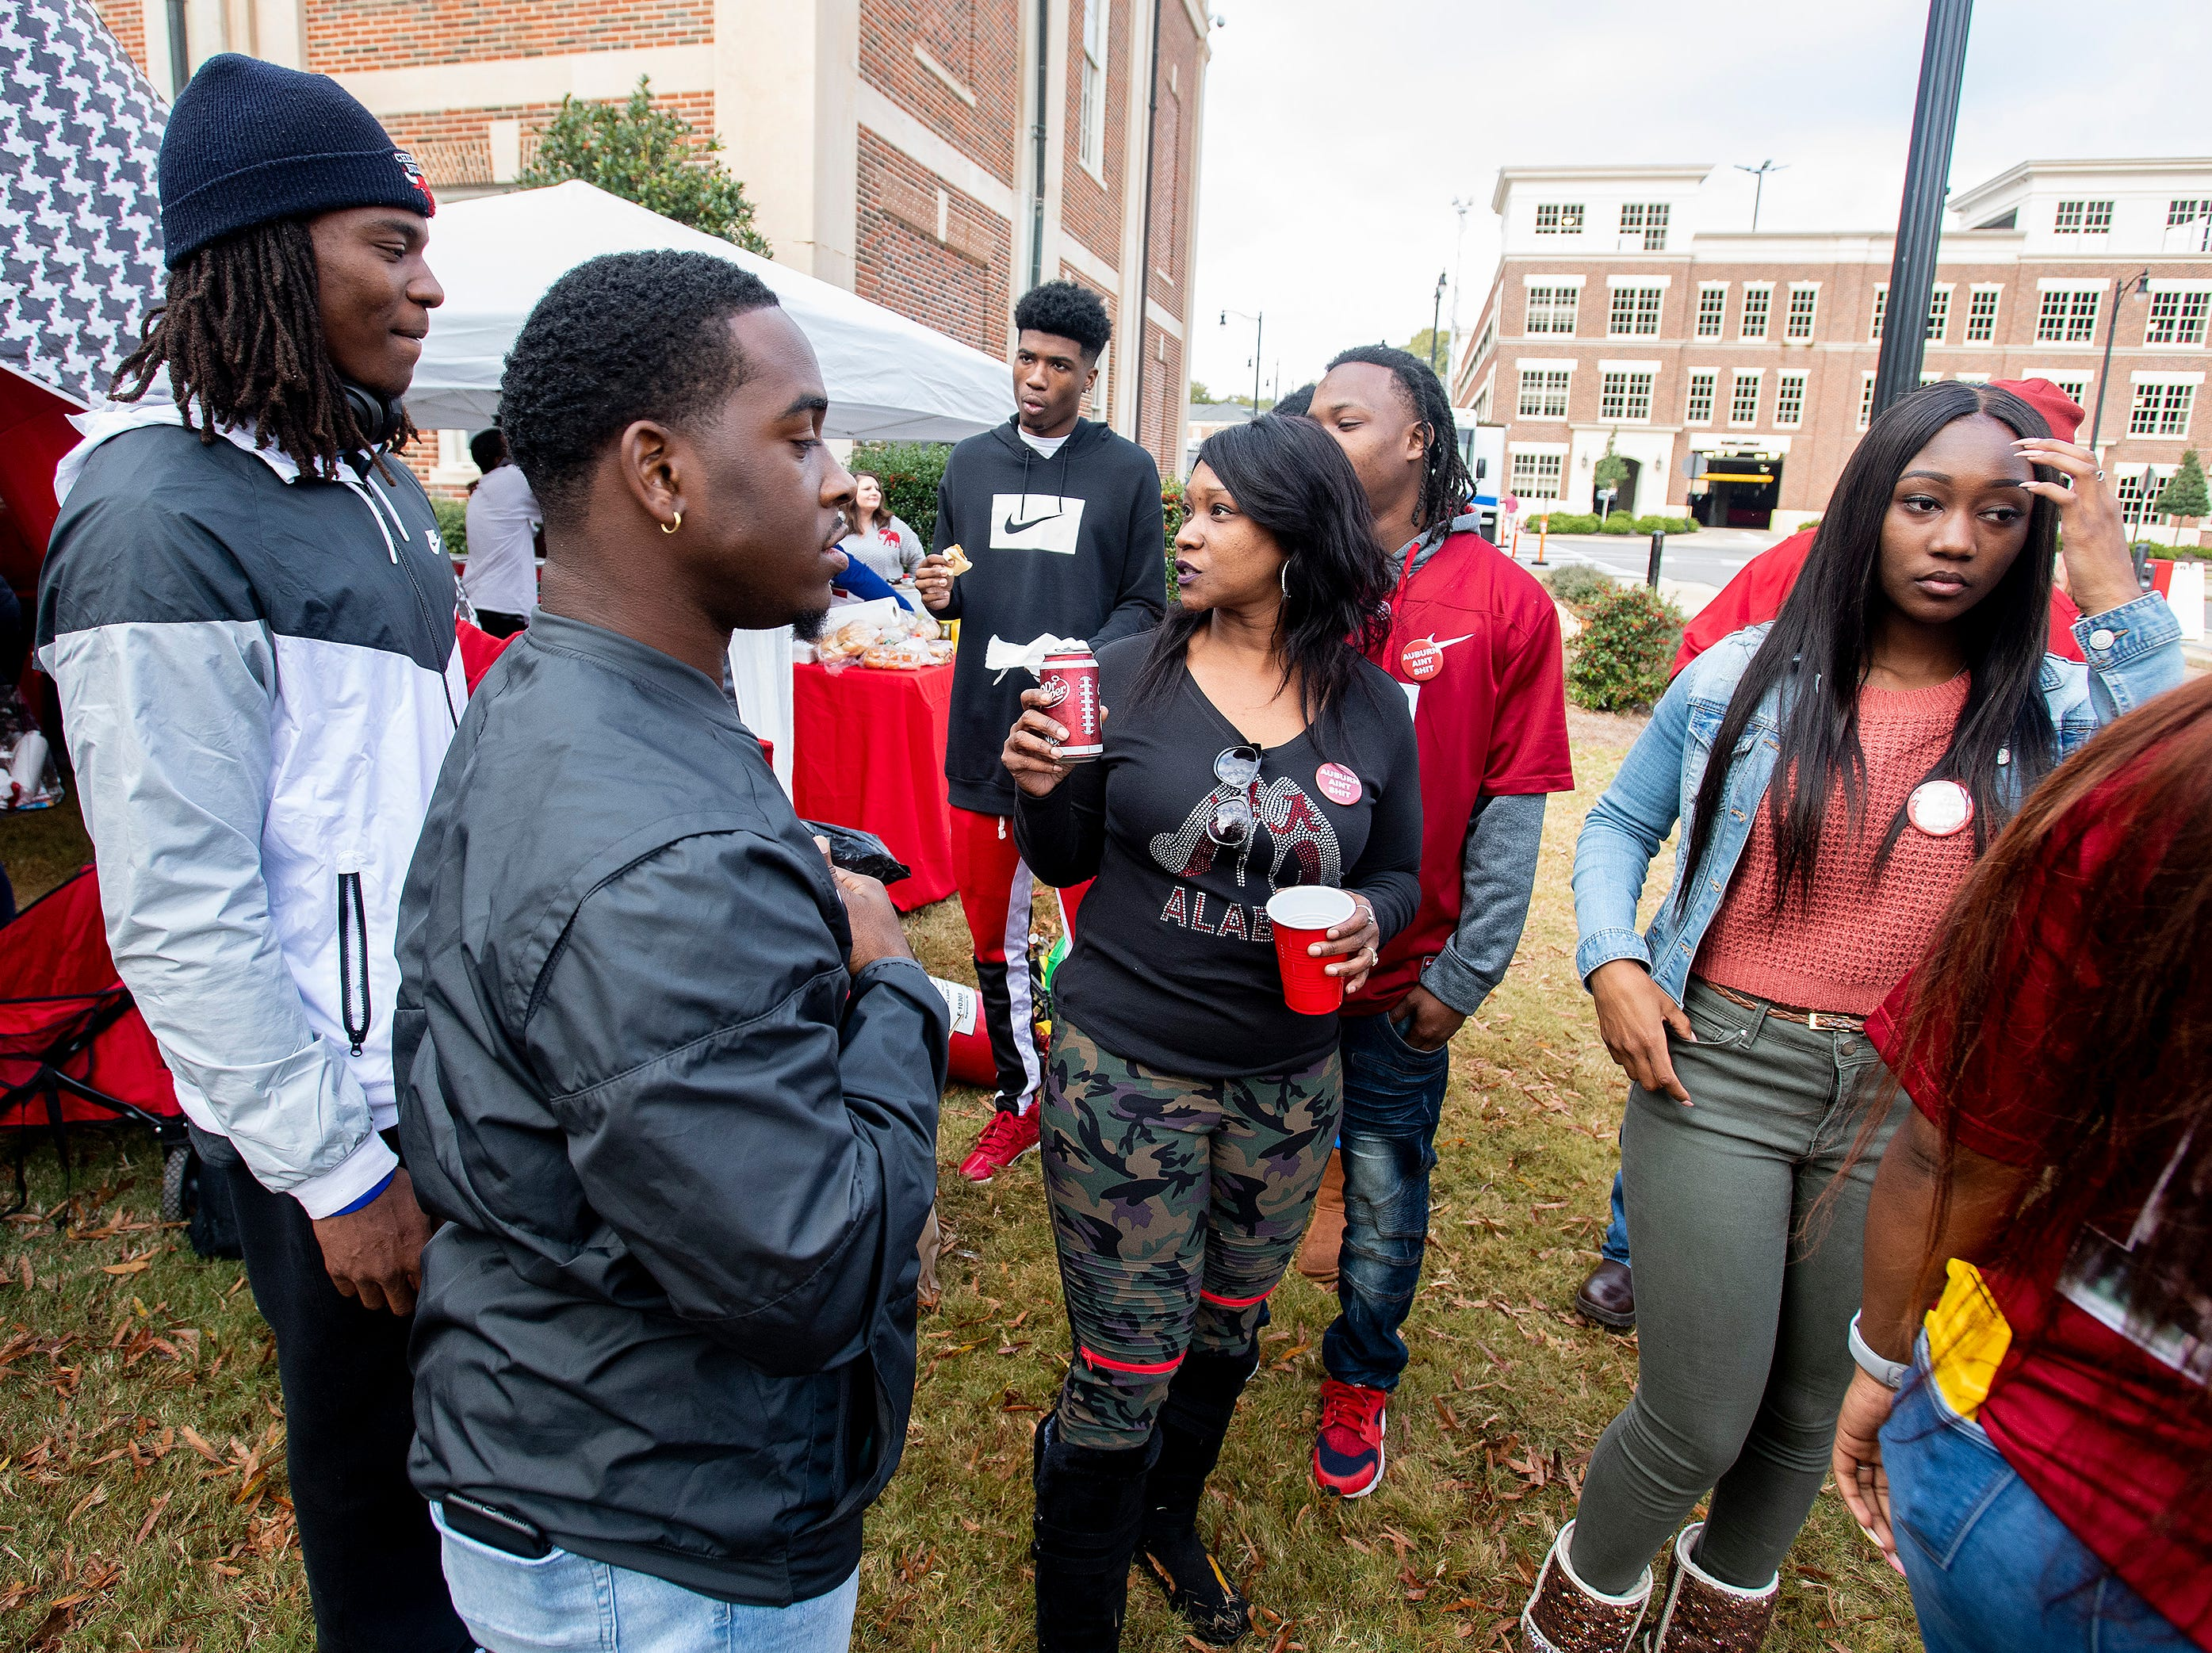 Nataki Ruggs, center, talks with her son Kevontae Ruggs, Ole Miss linebacker, as the Ruggs family and the family of Mack Wilson tailgate together before the Iron Bowl in Tuscaloosa, Ala., on Saturday November 24, 2018.